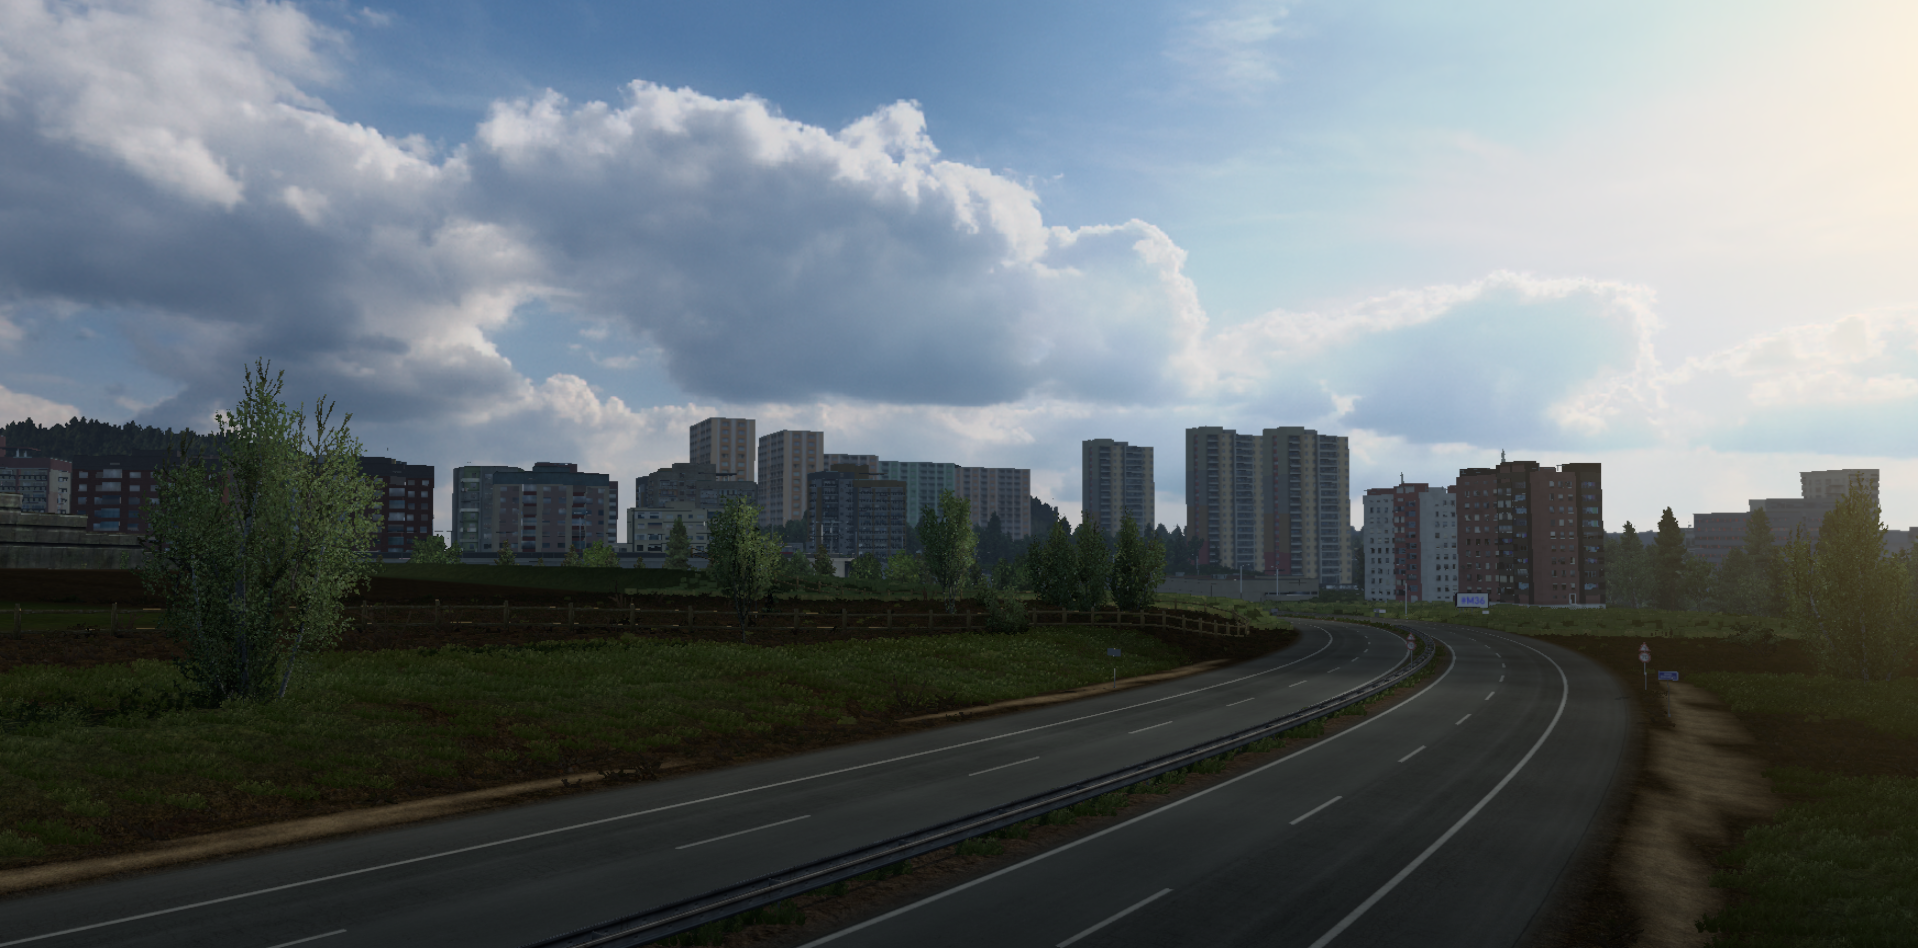 ets2_20210606_172445_00.png